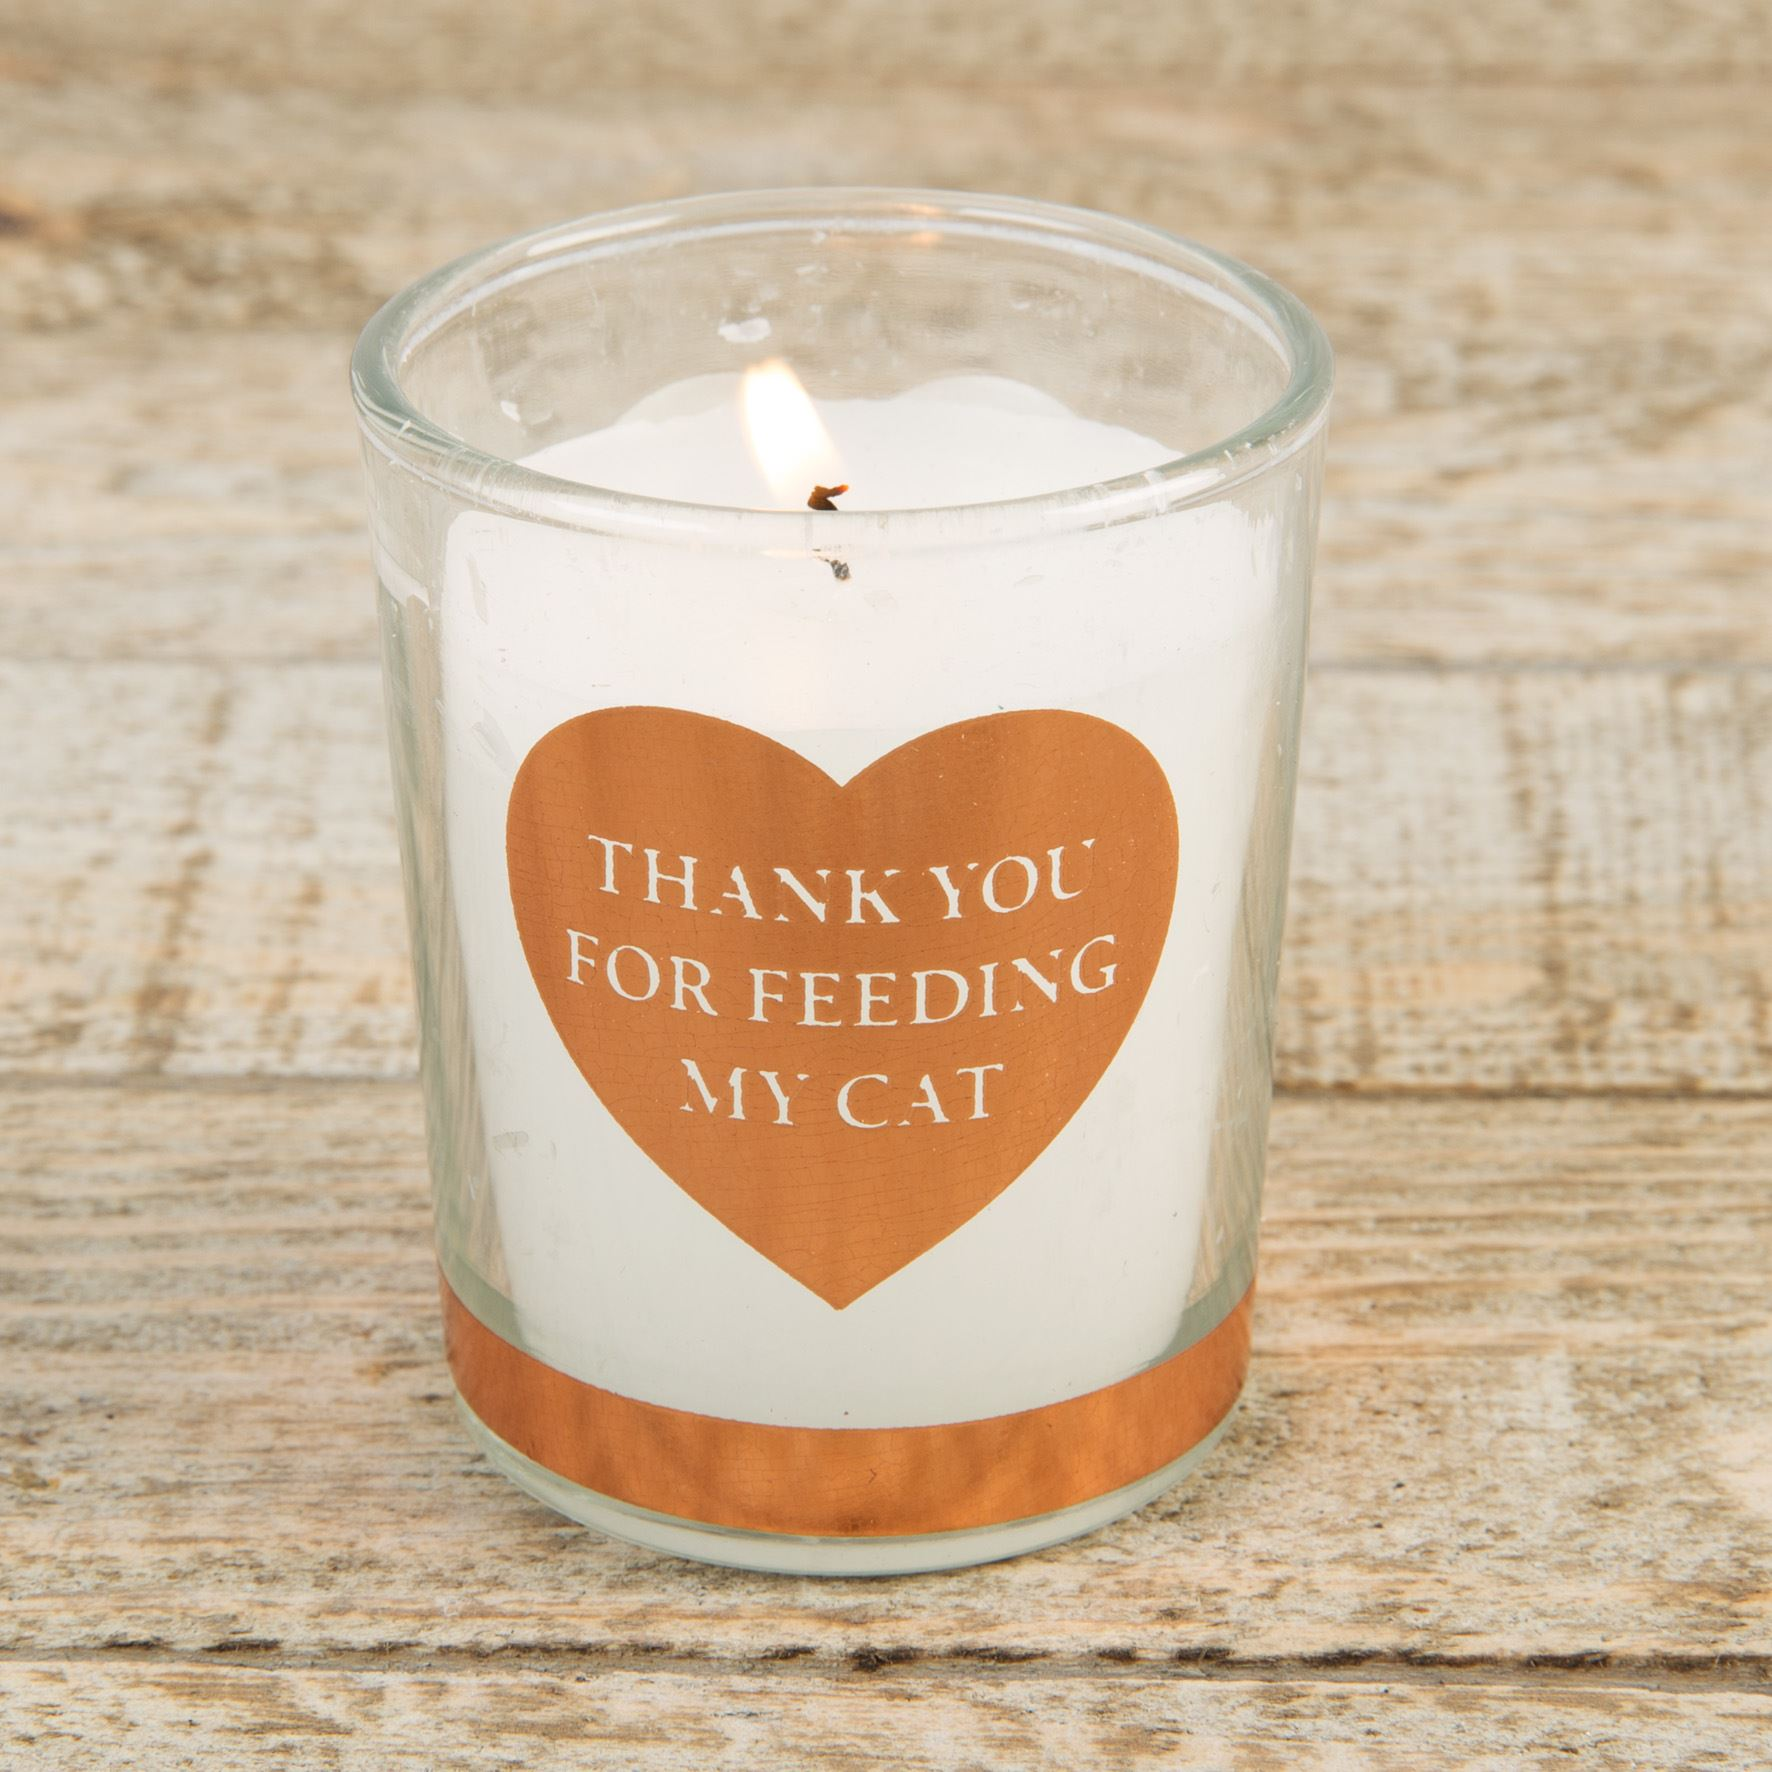 Best of Breed Scented Candle - Thank You For Feeding My Cat